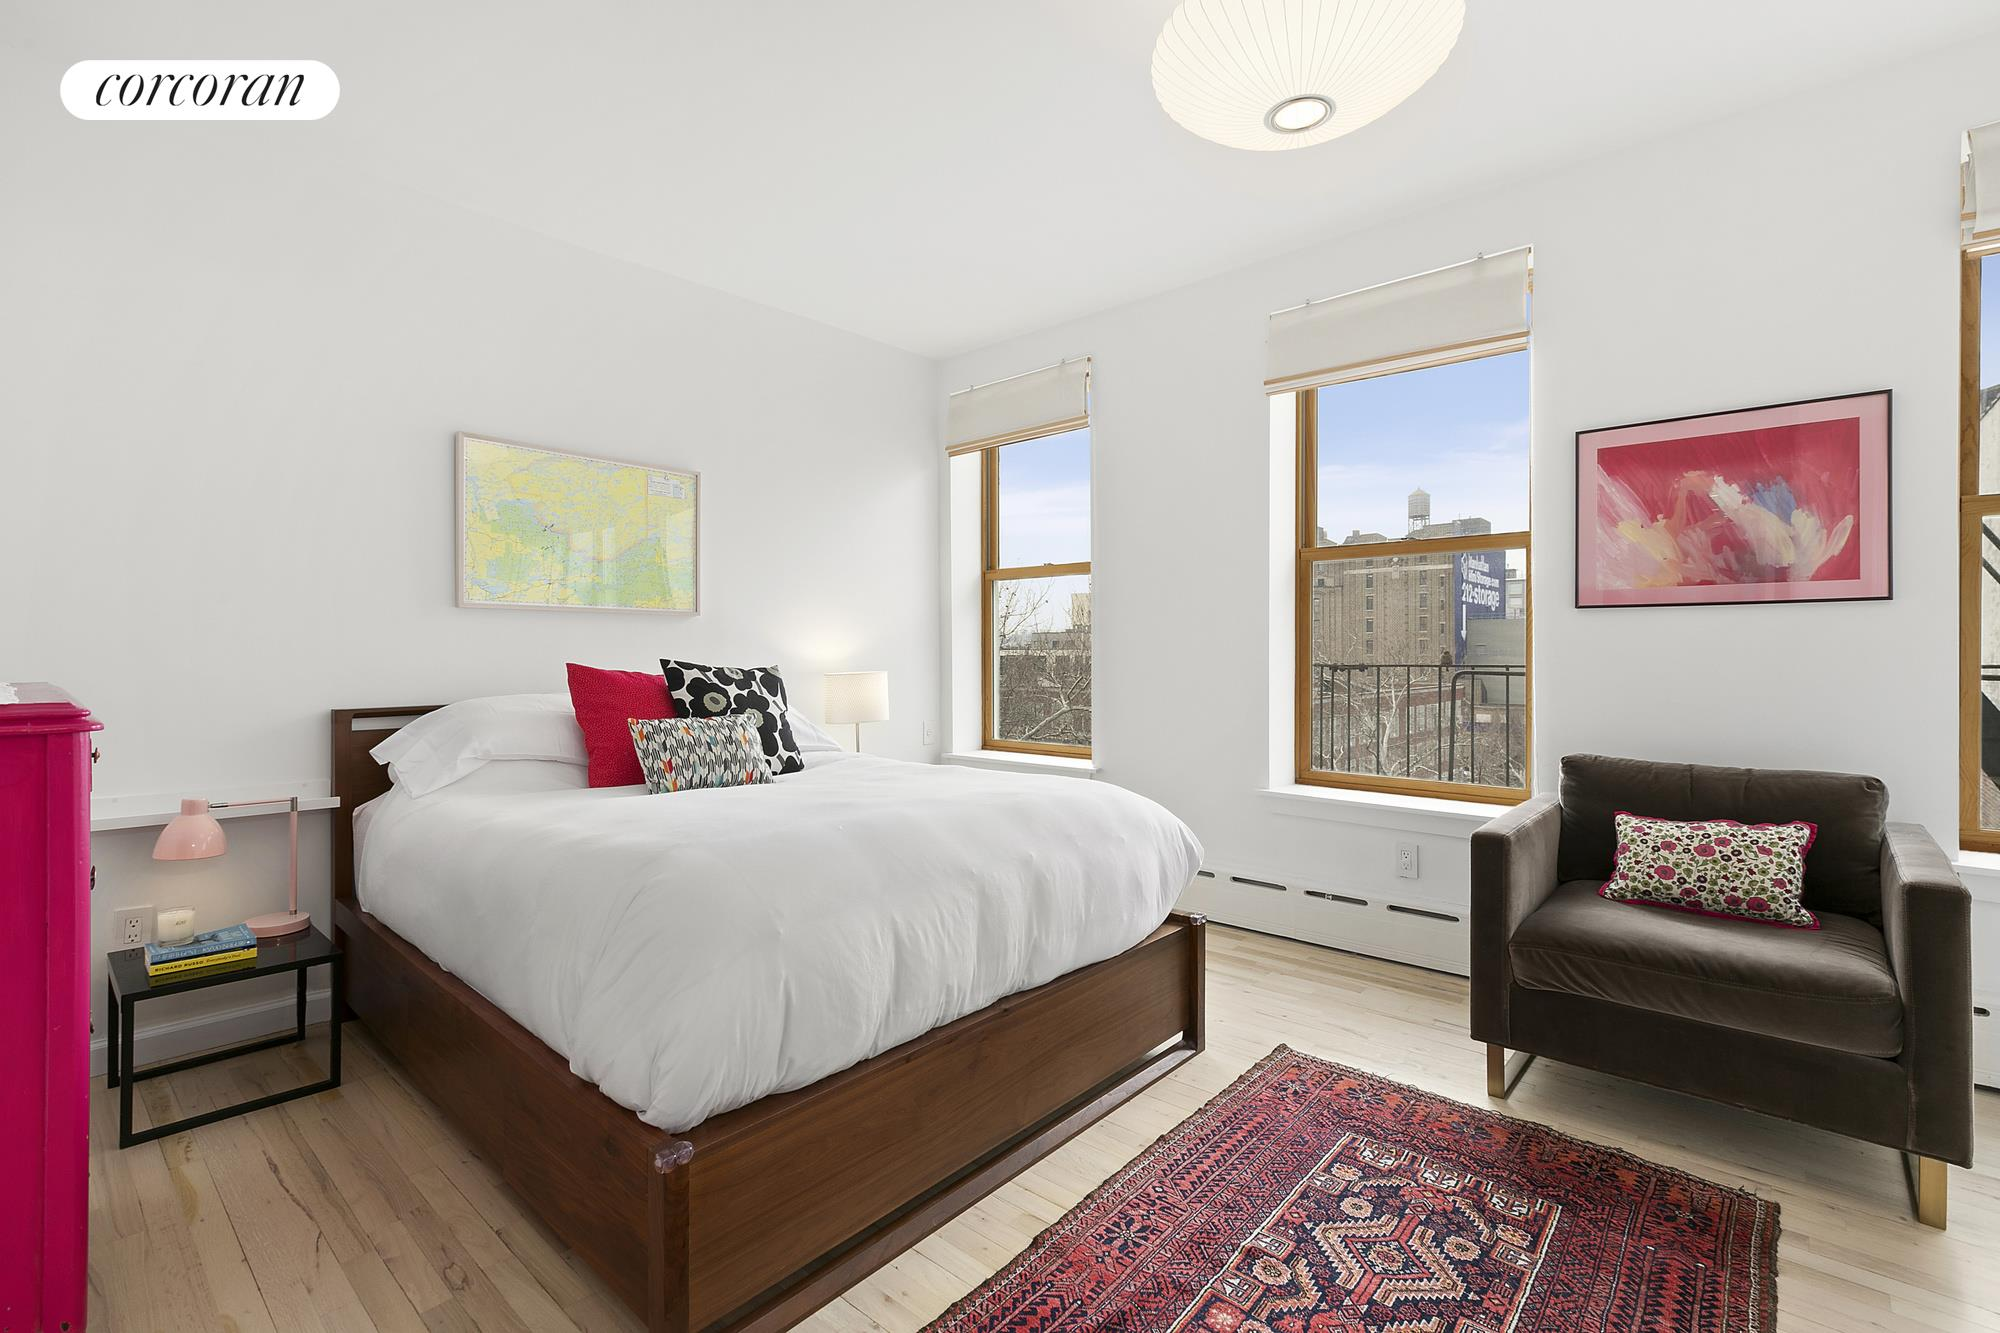 124 West 109th Street, 4-5B, Open floor plan kitchen, dining and living rooms